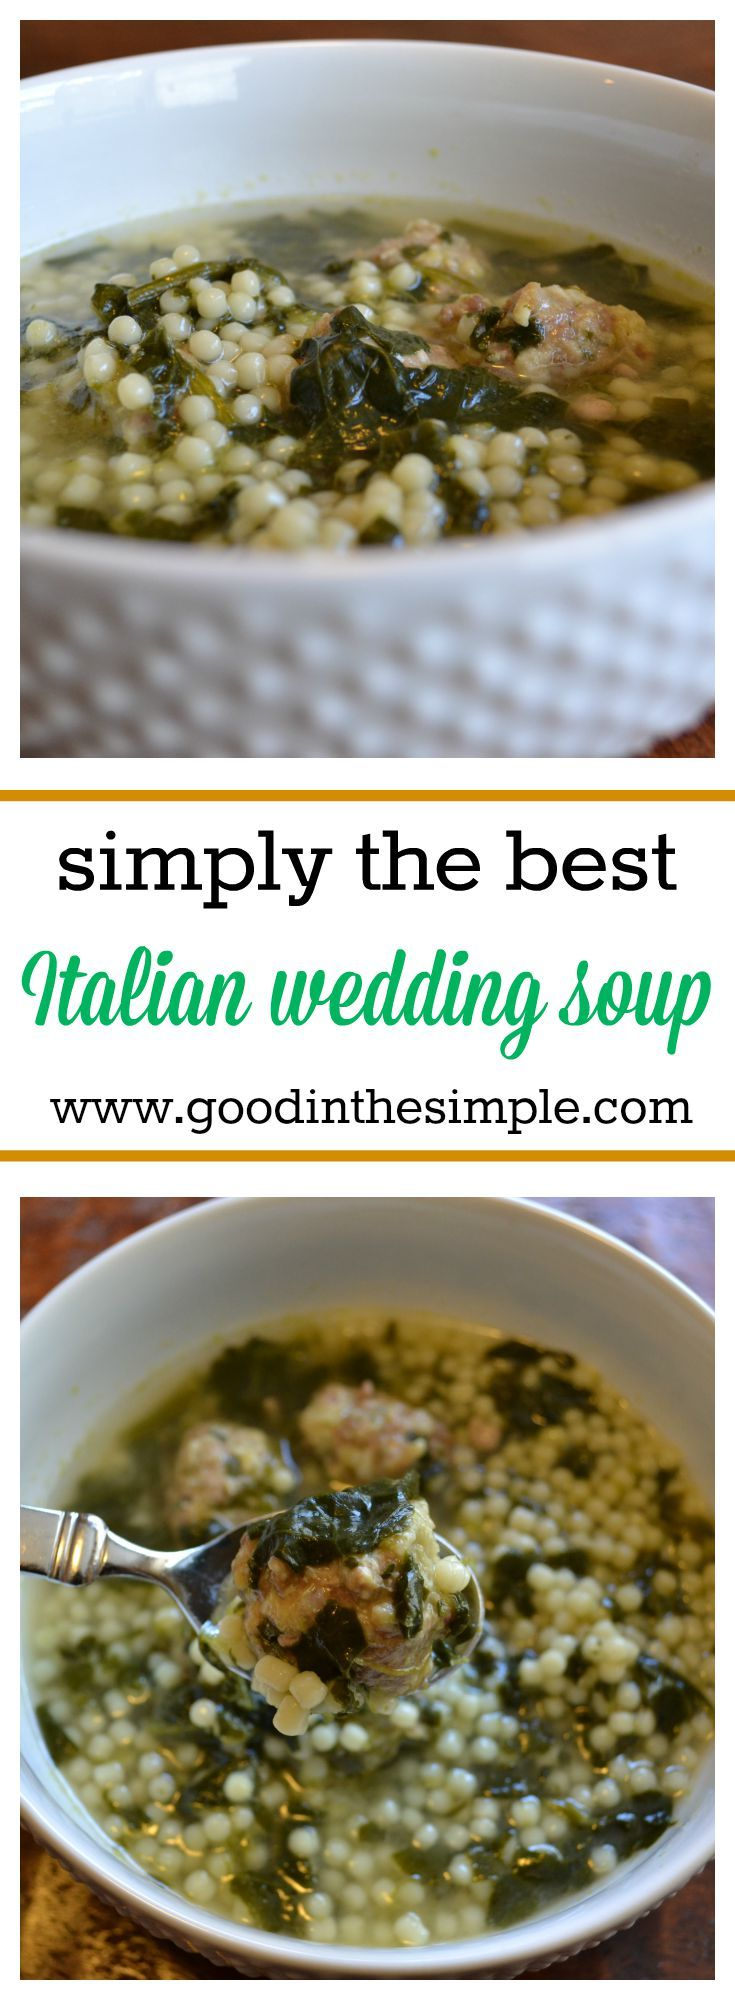 When my daughter's favorite store-bought Italian Wedding Soup was discontinued, I promised her I'd make an exact replica myself. This recipe is her new favorite!